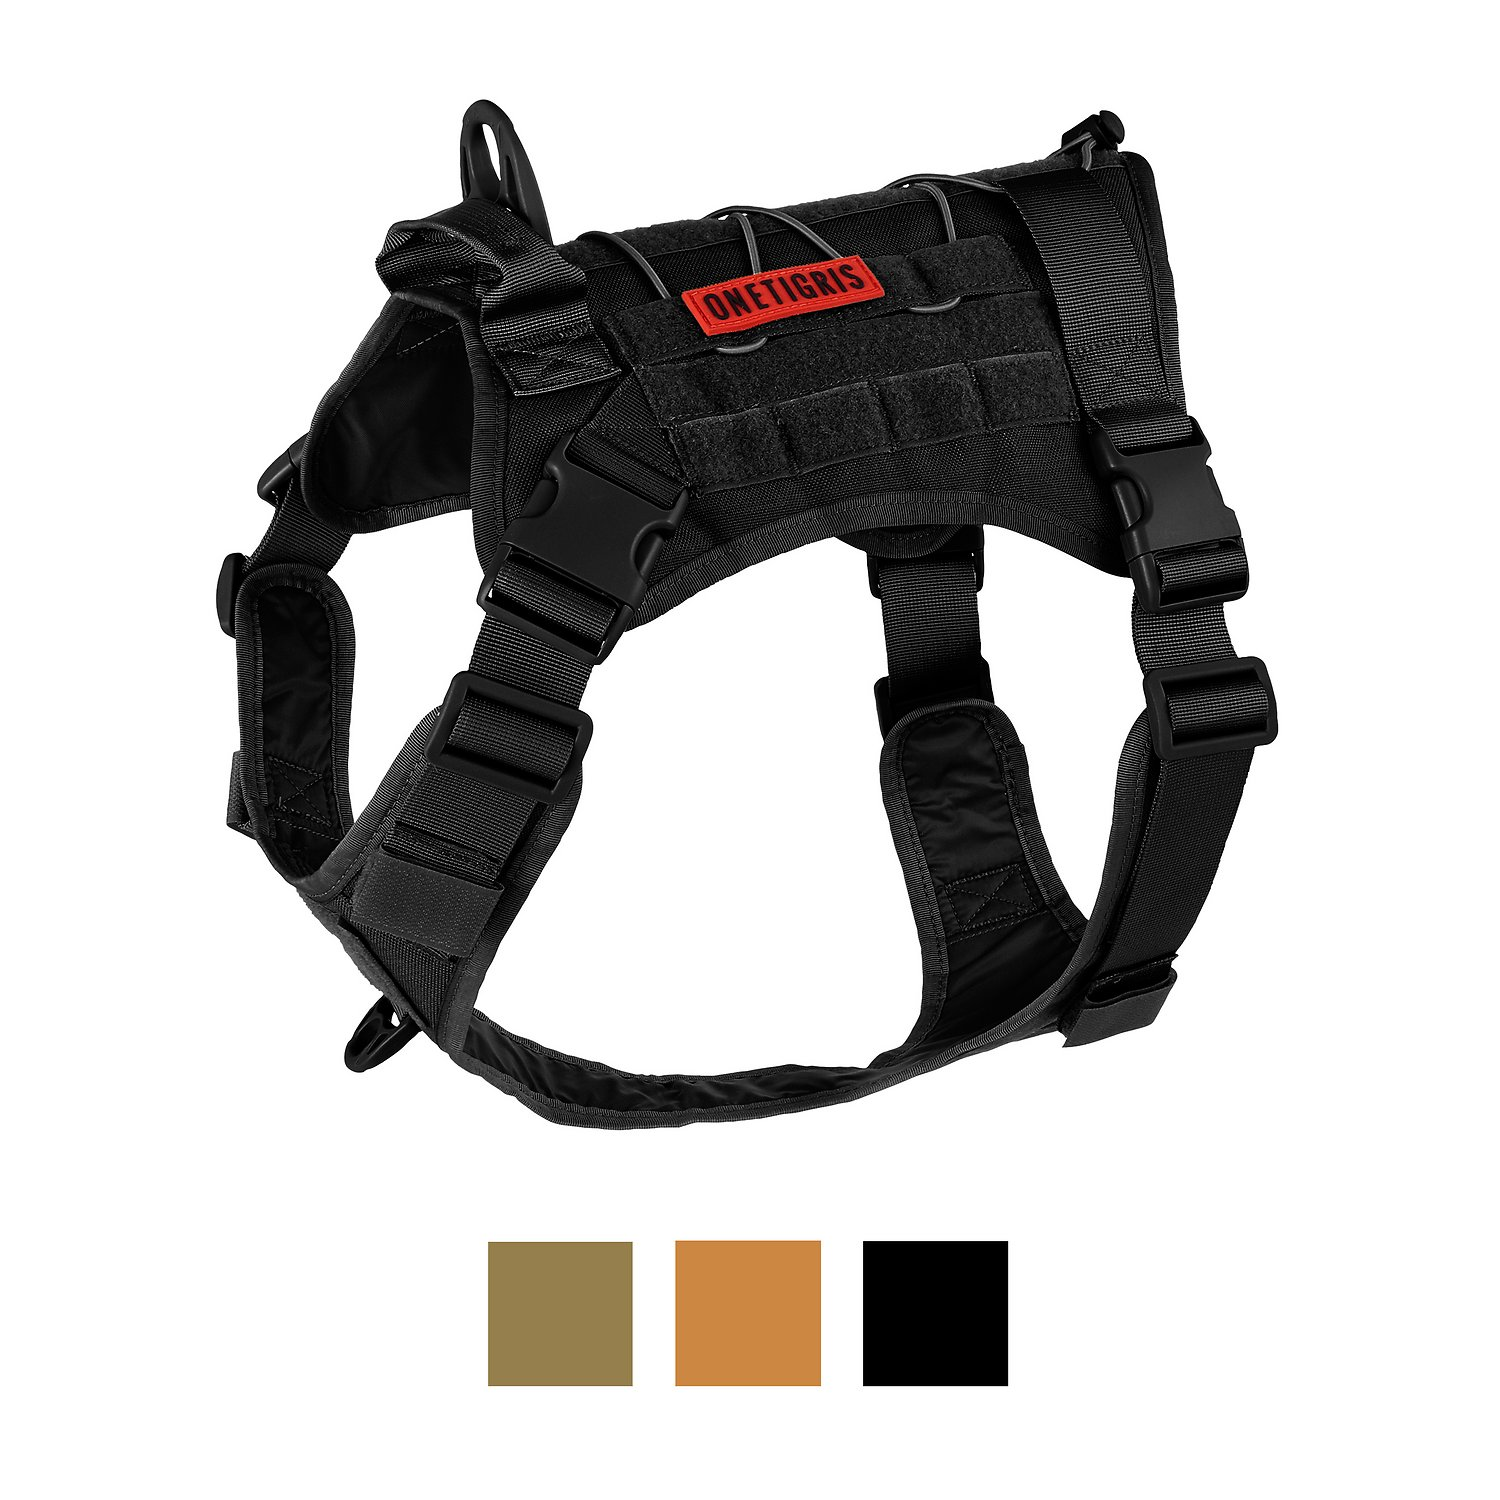 how to get a service vest for my dog